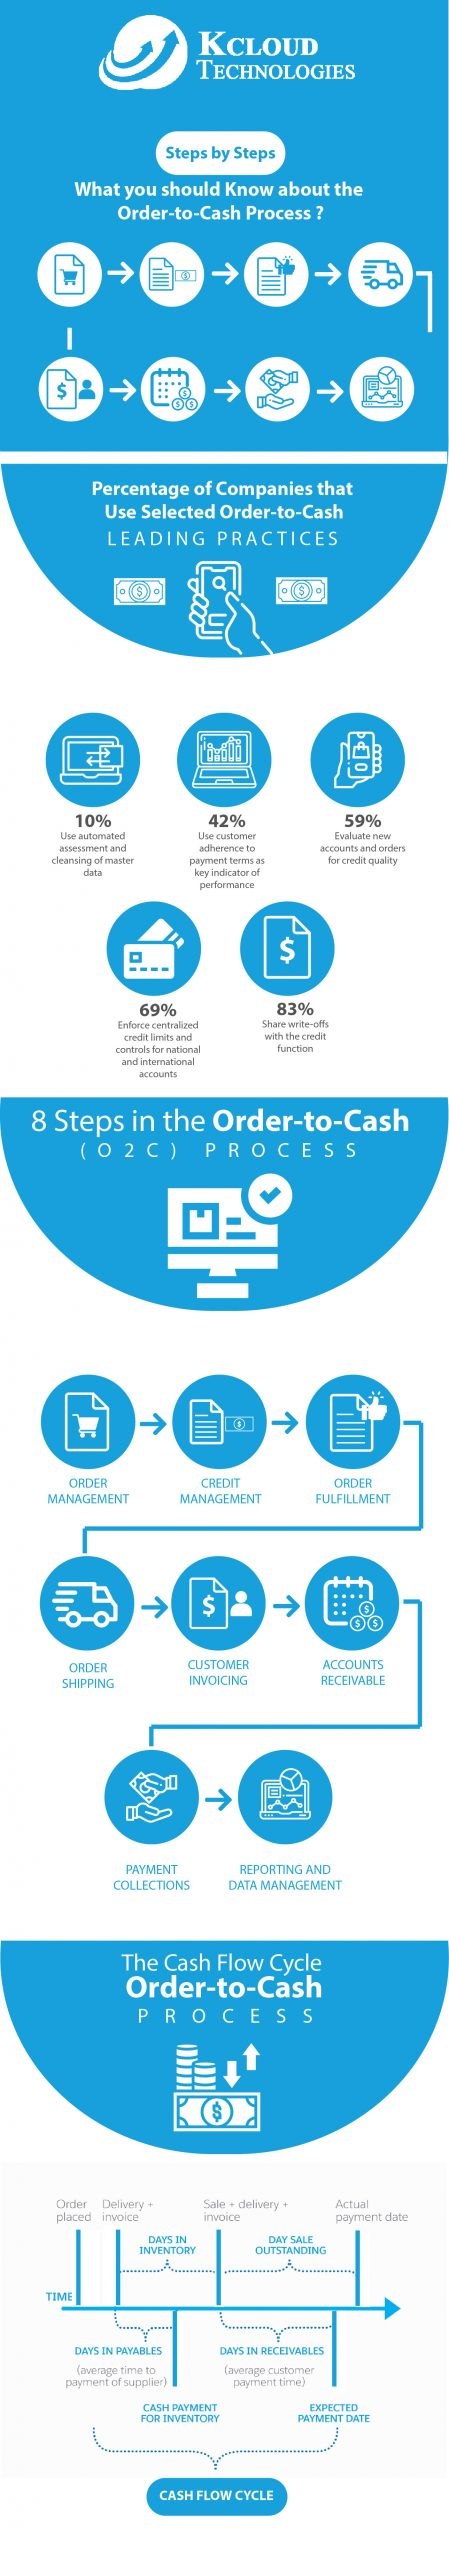 Why You Should Know About Order to Cash Process - Step by Step | Salesforce Guide